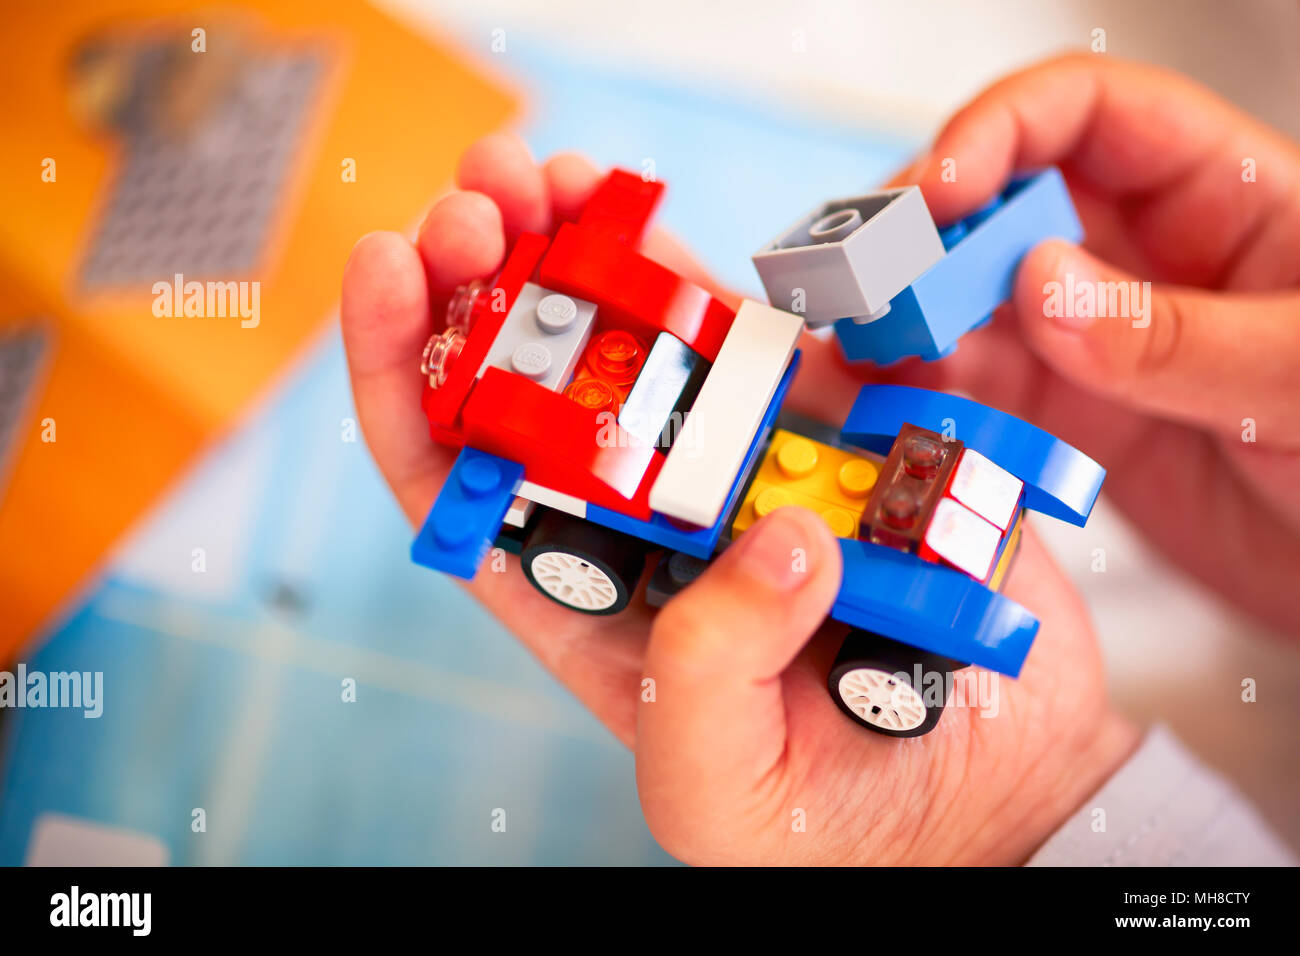 Tambov, Russian Federation - December 19, 2013 Child building Lego car. There are  Lego instructions in background. - Stock Image